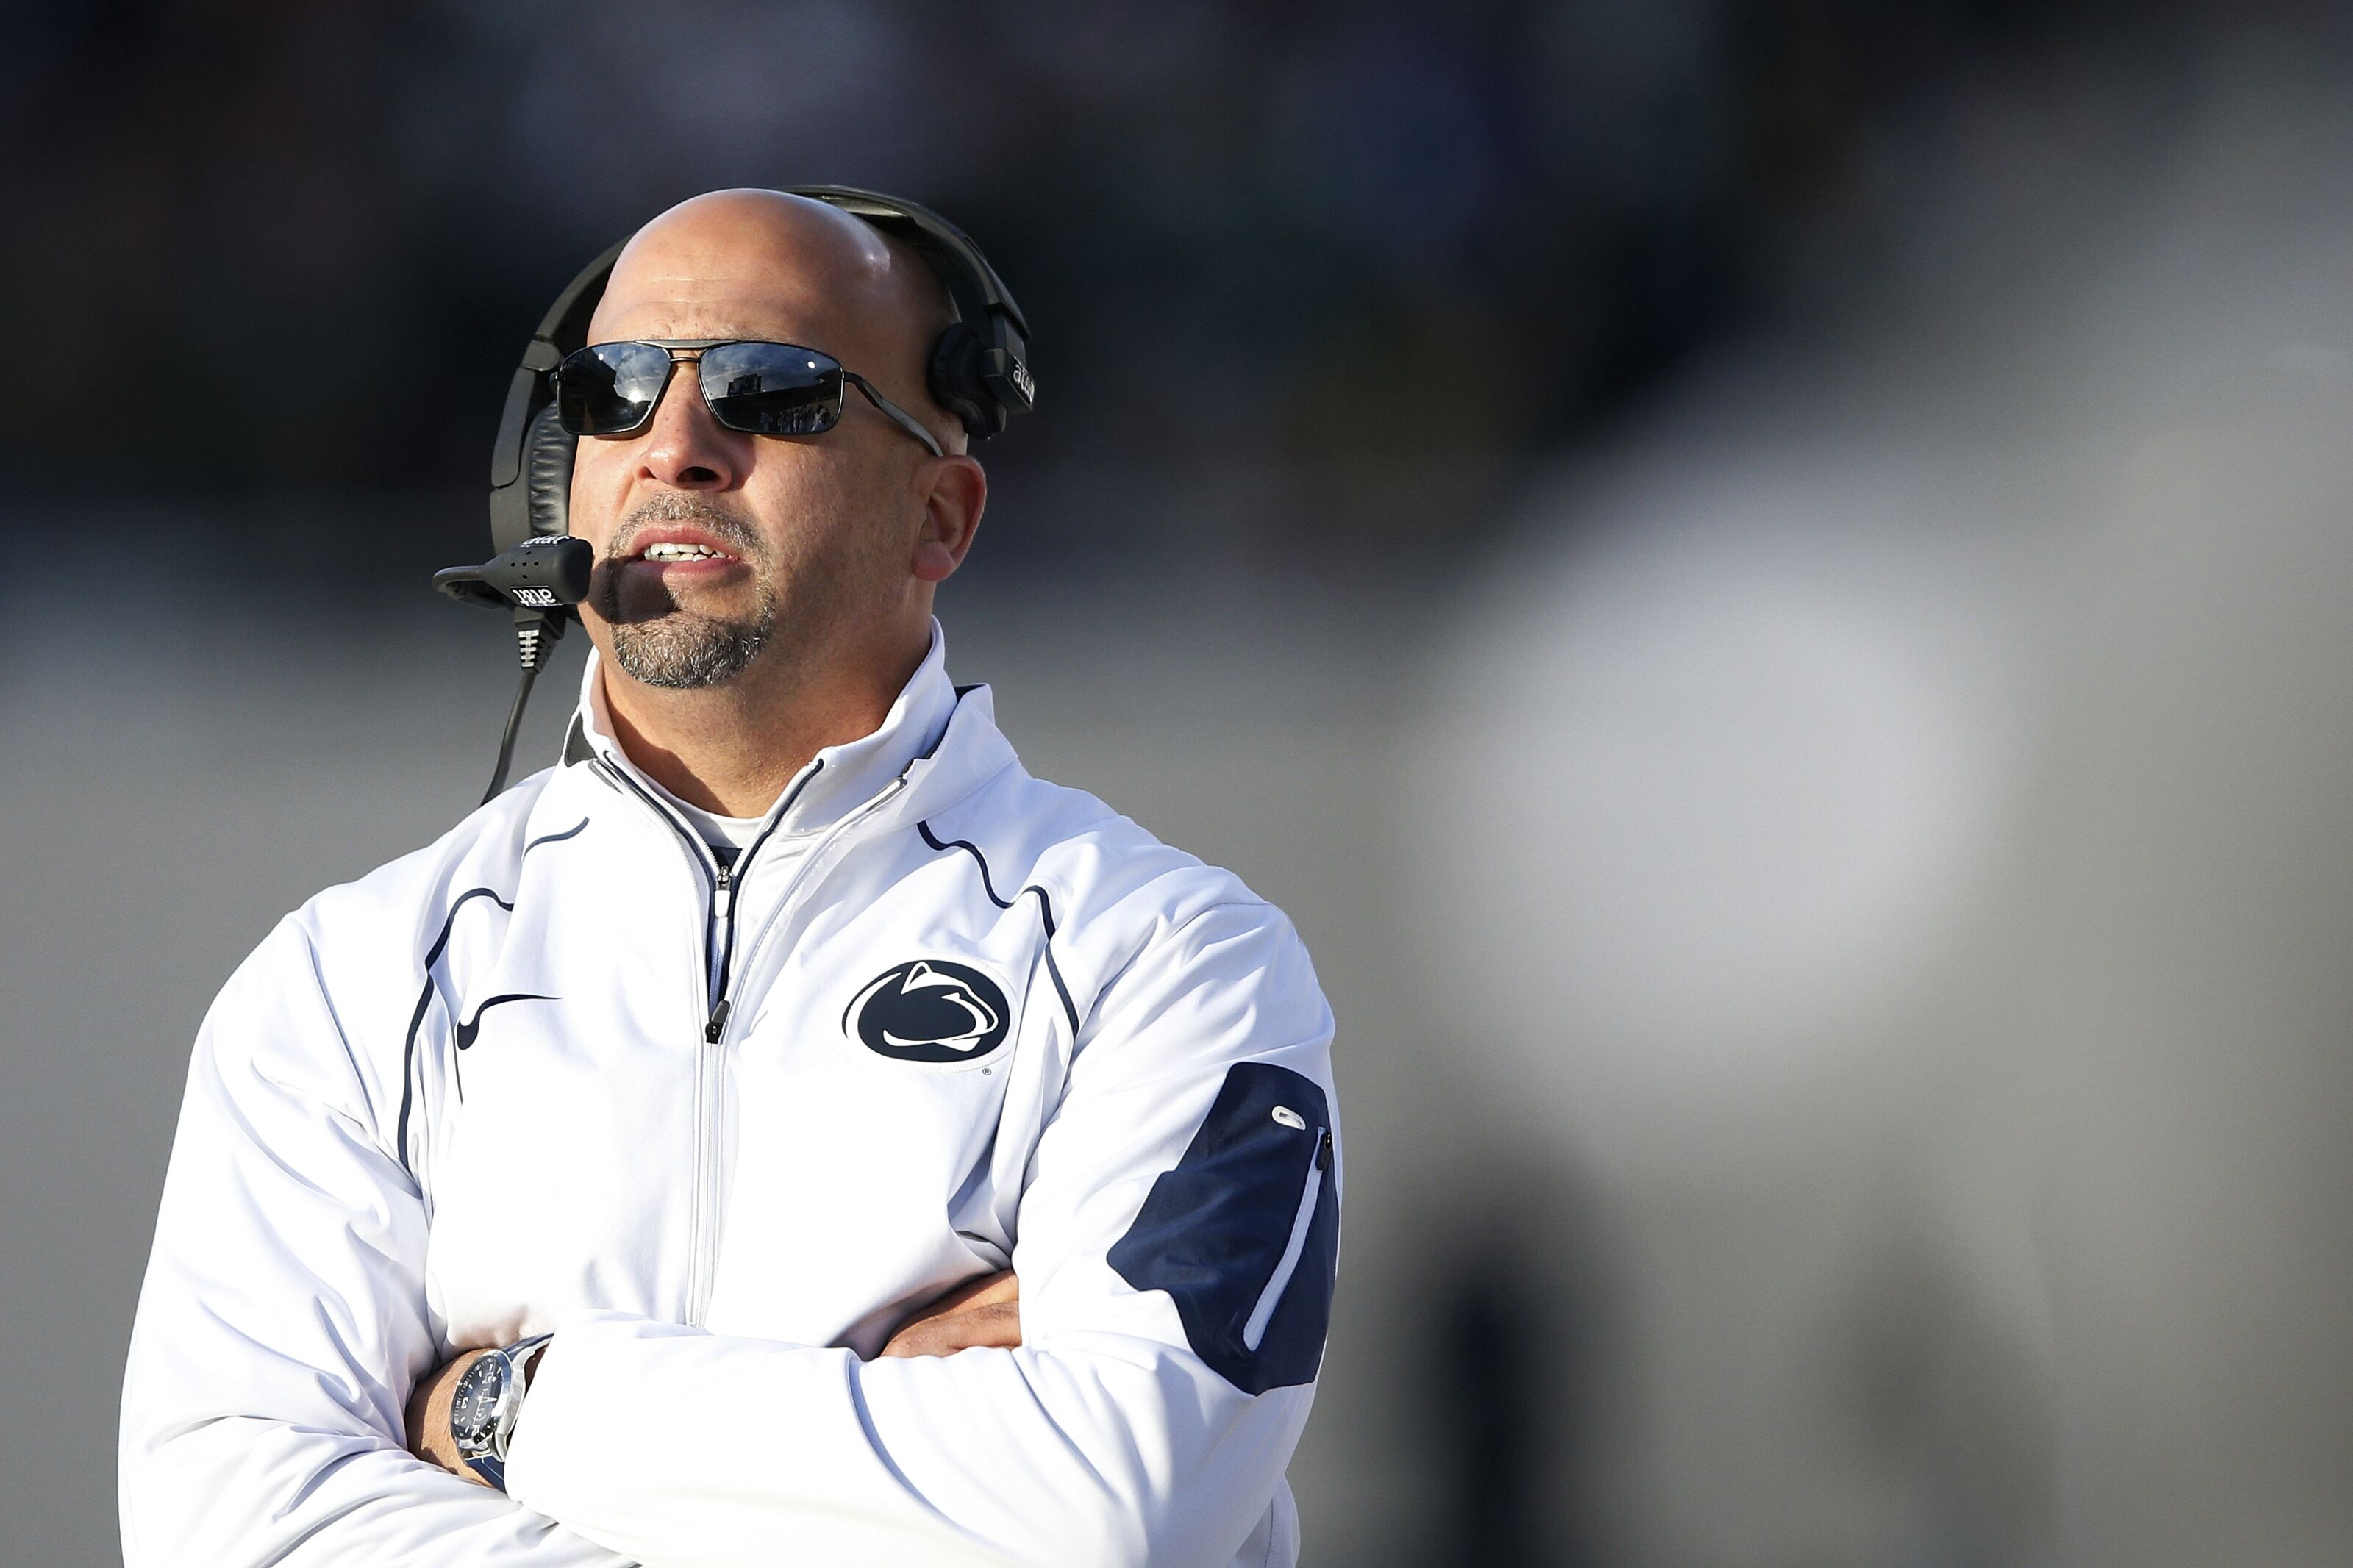 Former Penn State football doctor makes strong claim against James Franklin